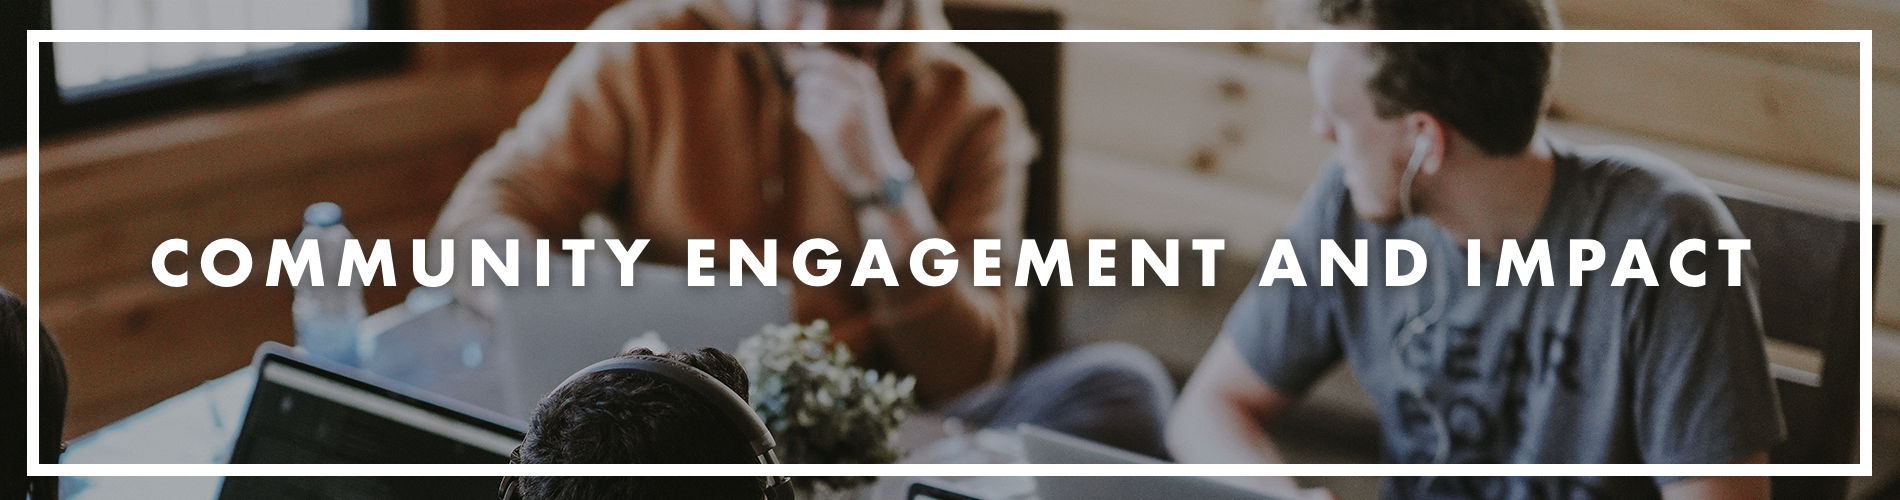 Community Engagement and Impact Header